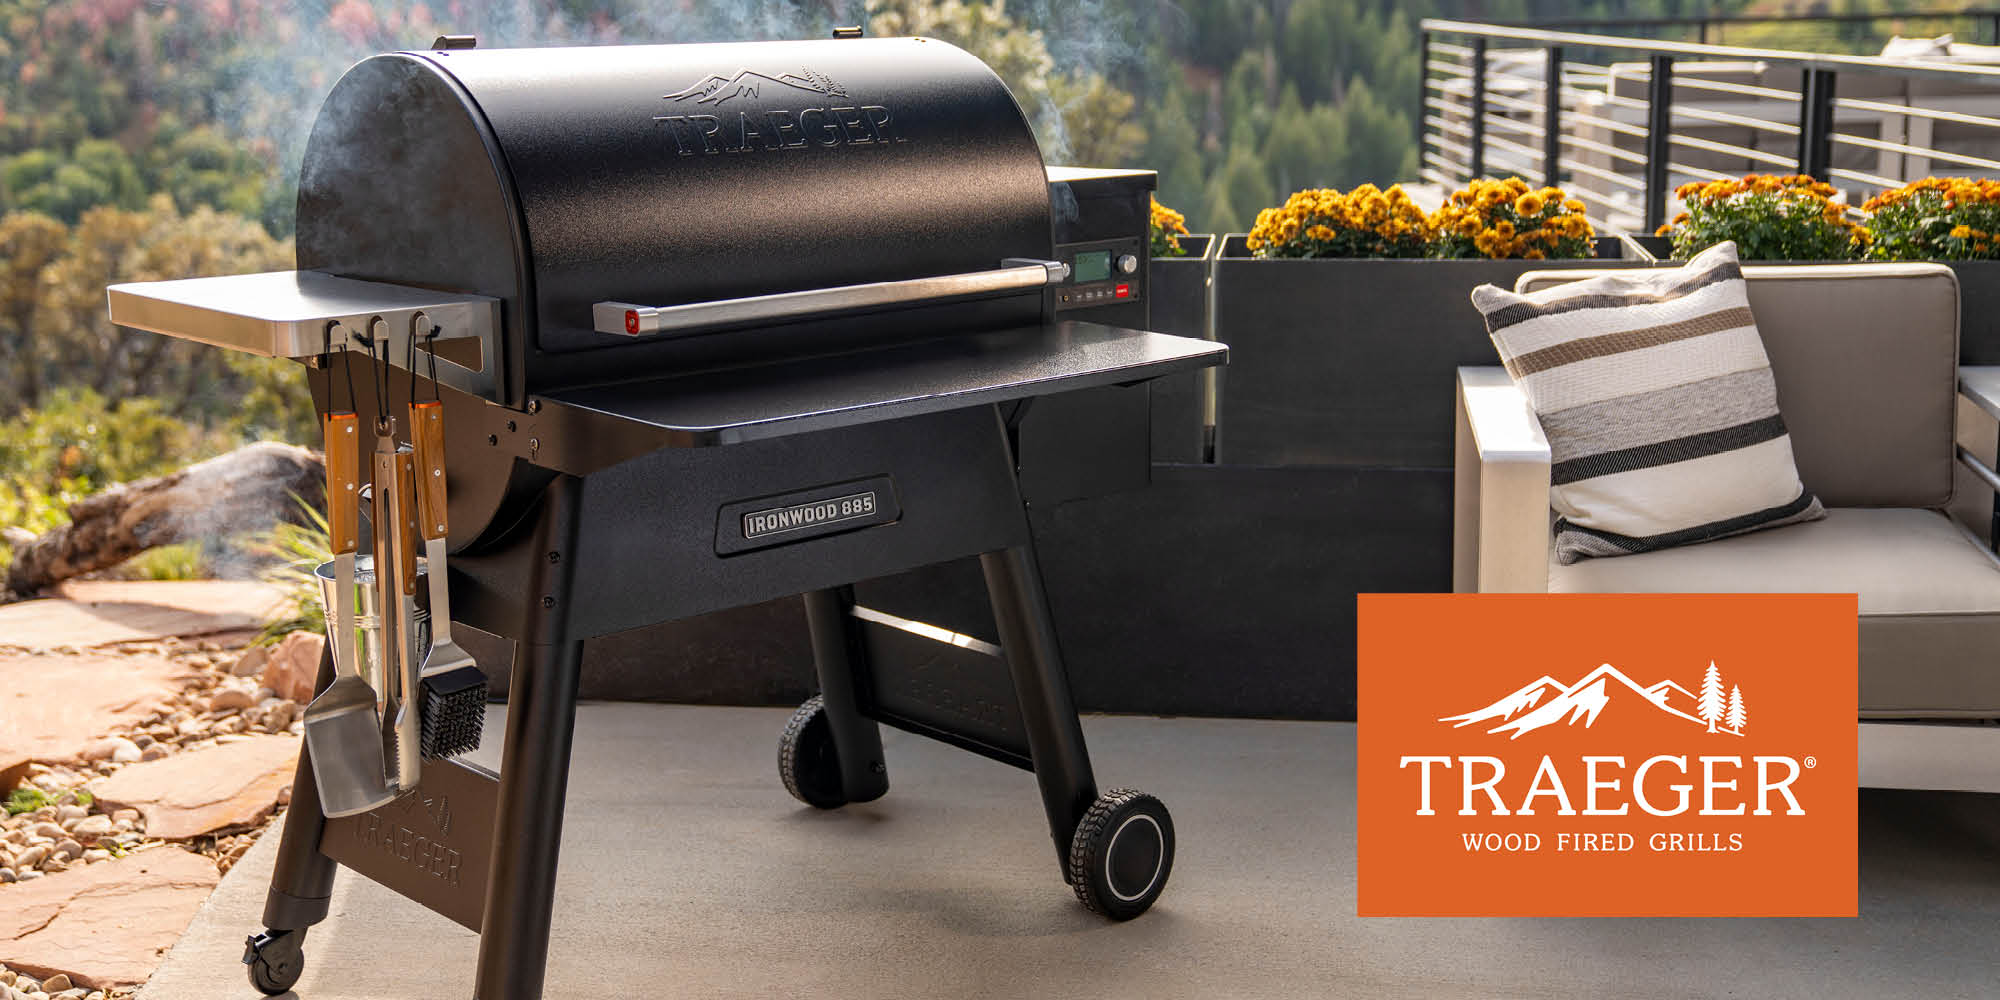 Ironwood 885 pellet grill from Traeger